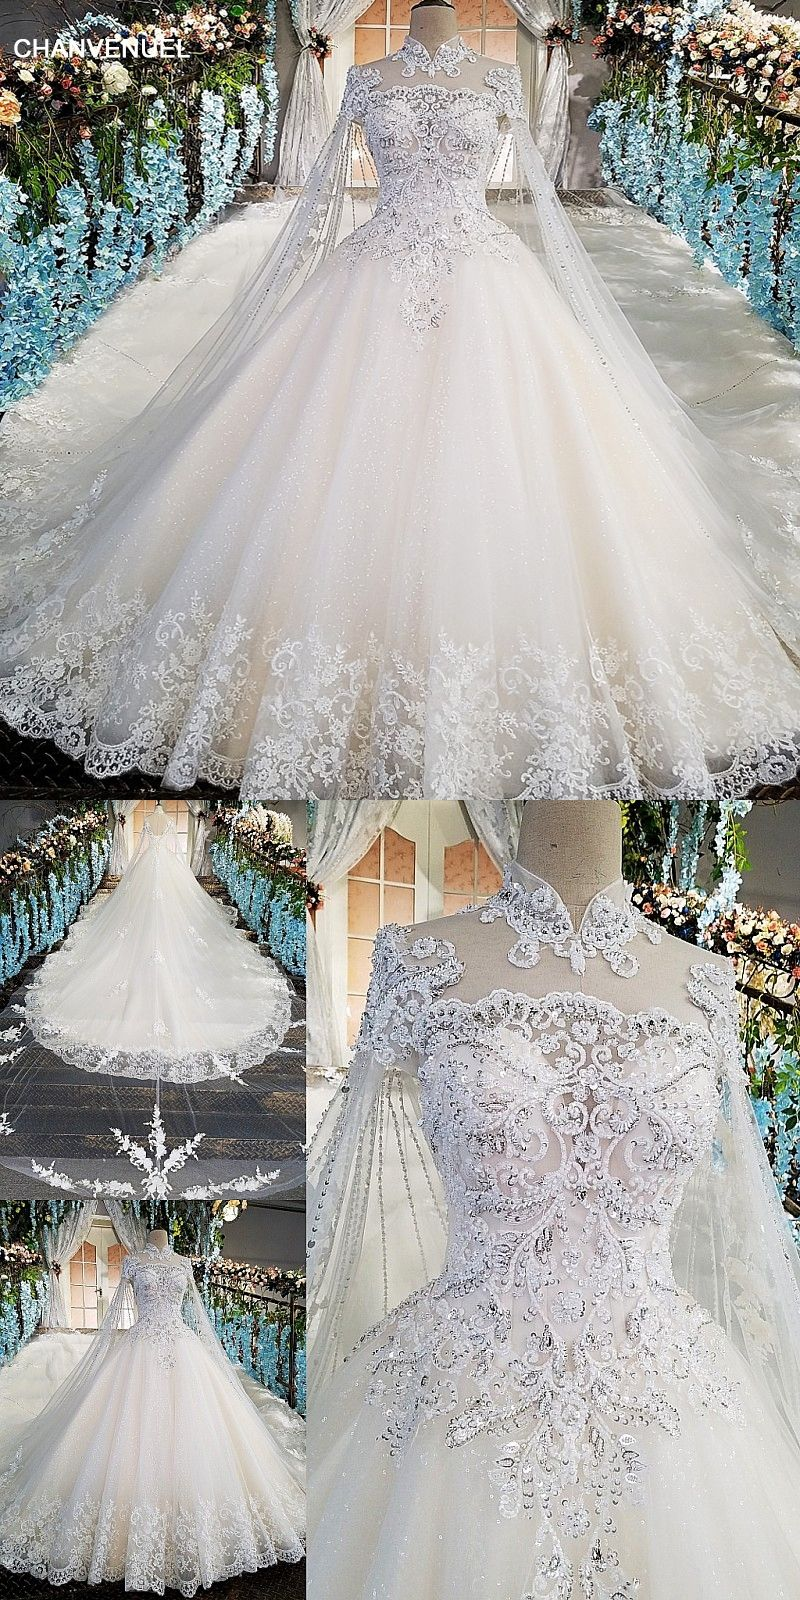 Ls00169 Luxury Wedding Gowns With Cape Beaded Ball Gown Short Sleeves High Neckine Lace Vestido De N Ball Gown Wedding Dress Wedding Dresses Ball Gowns Wedding [ 1600 x 800 Pixel ]